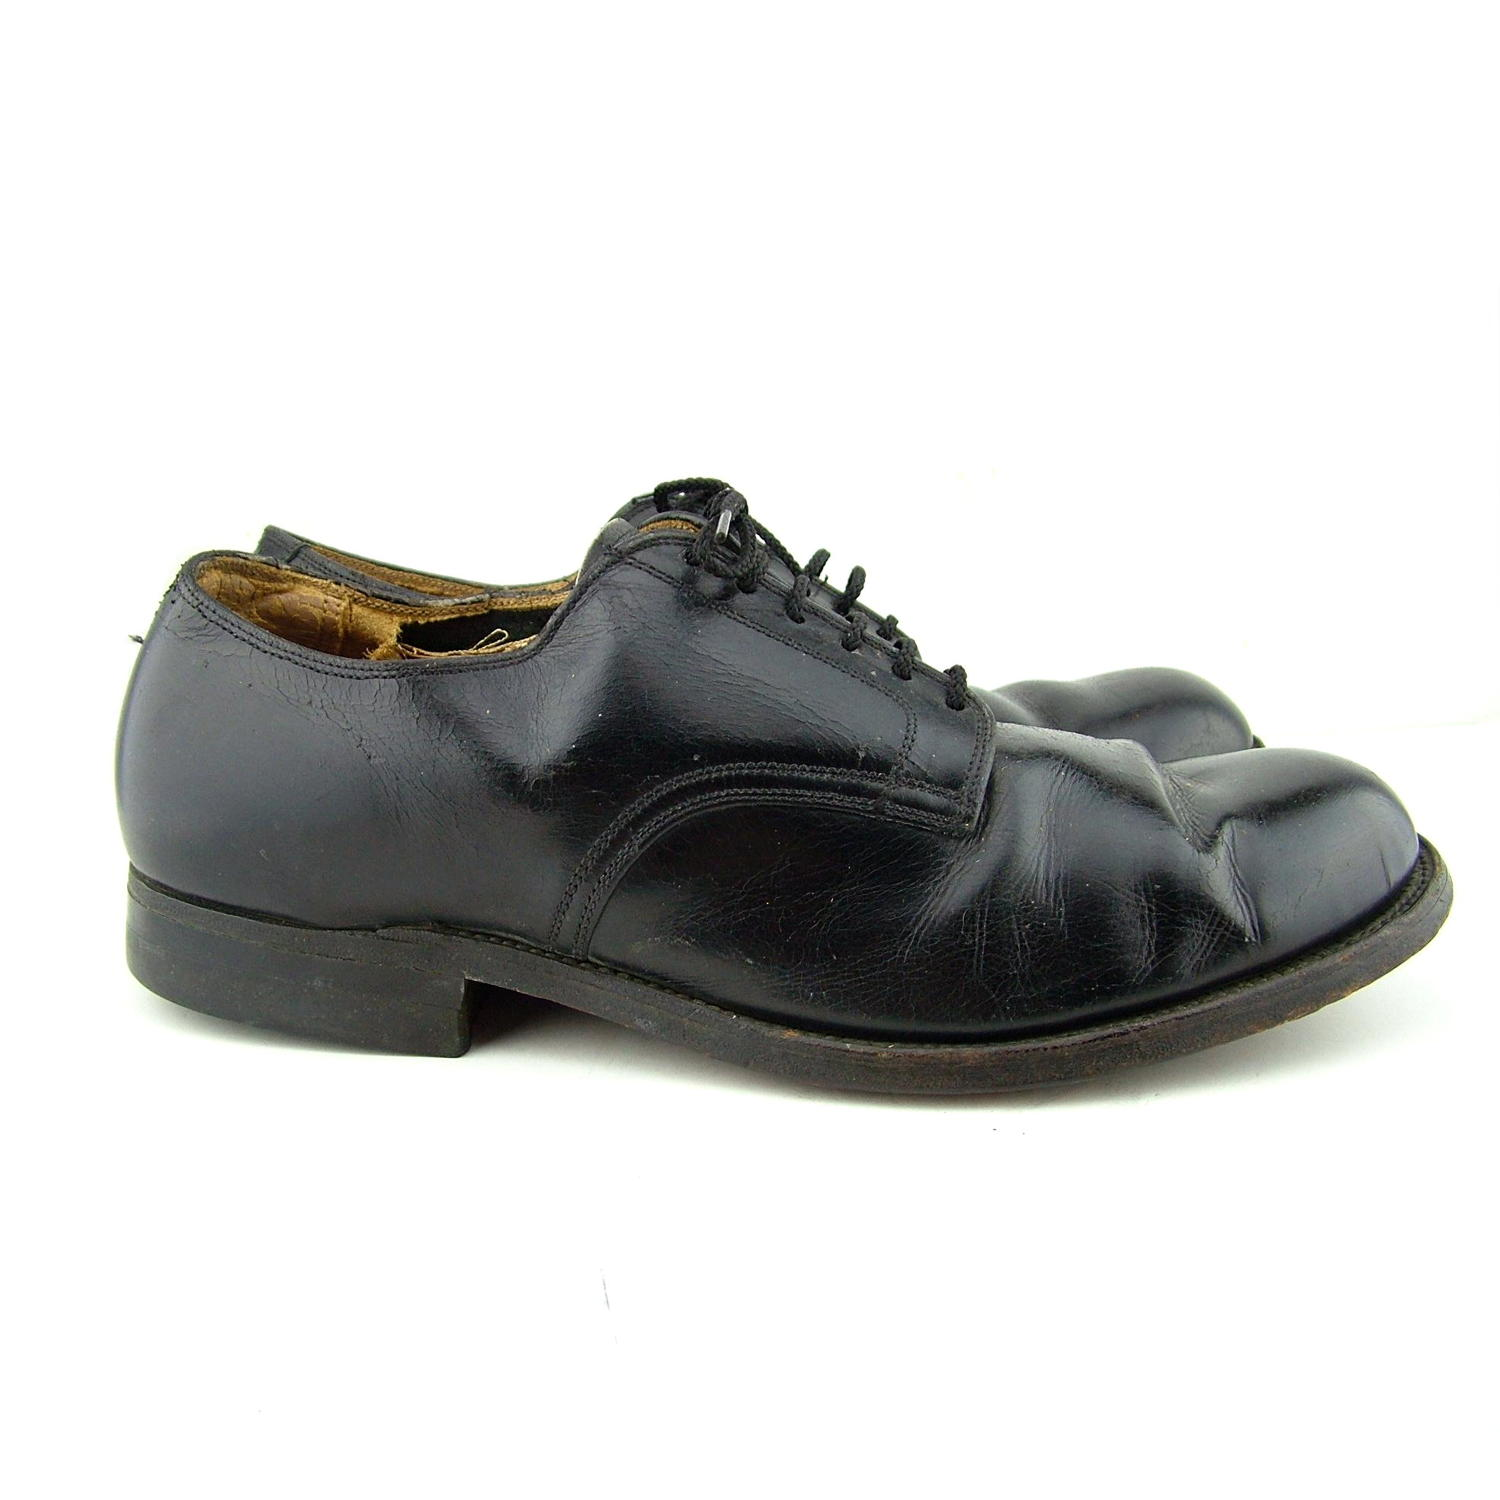 RAF issue service dress shoes